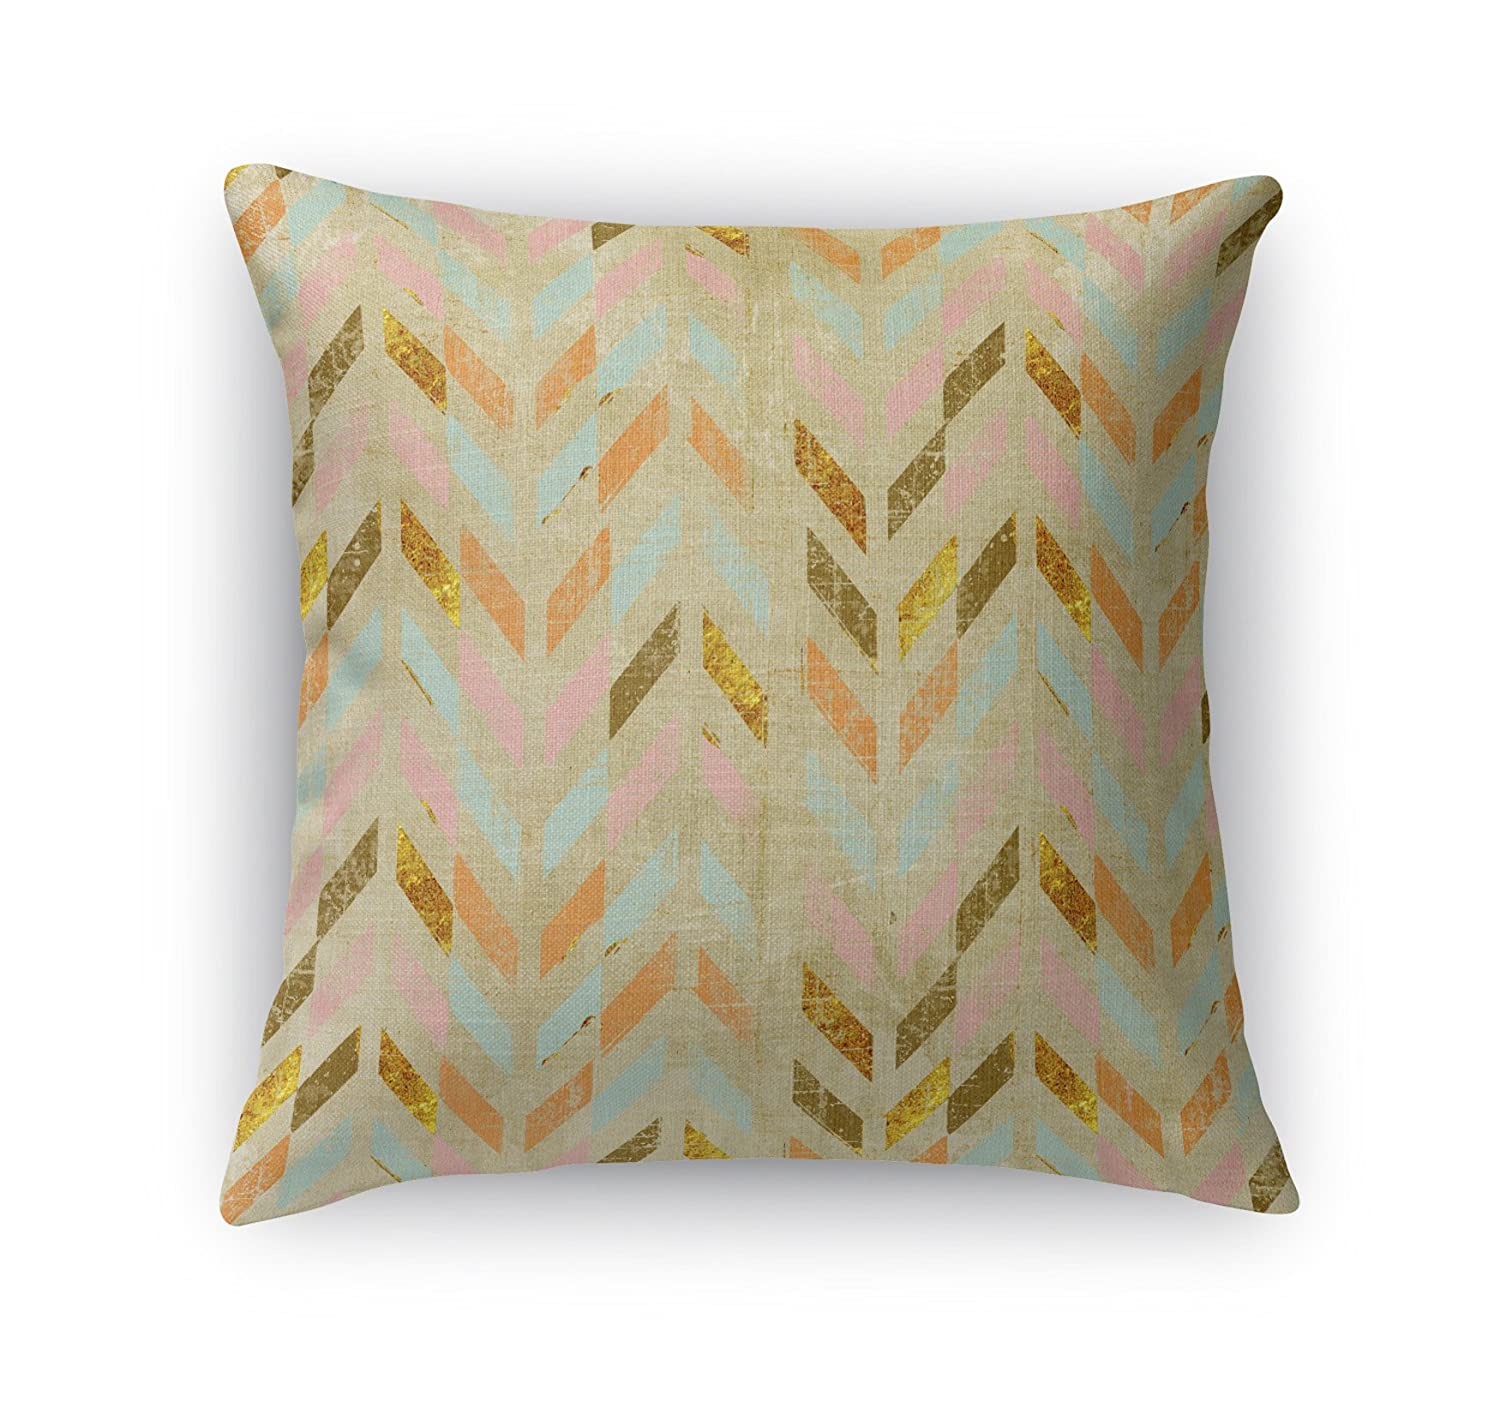 KAVKA Designs Palermo Accent Pillow, (Pink/Teal/Brown) - , Size: 18X18X6 - (TELAVC1443DI18)